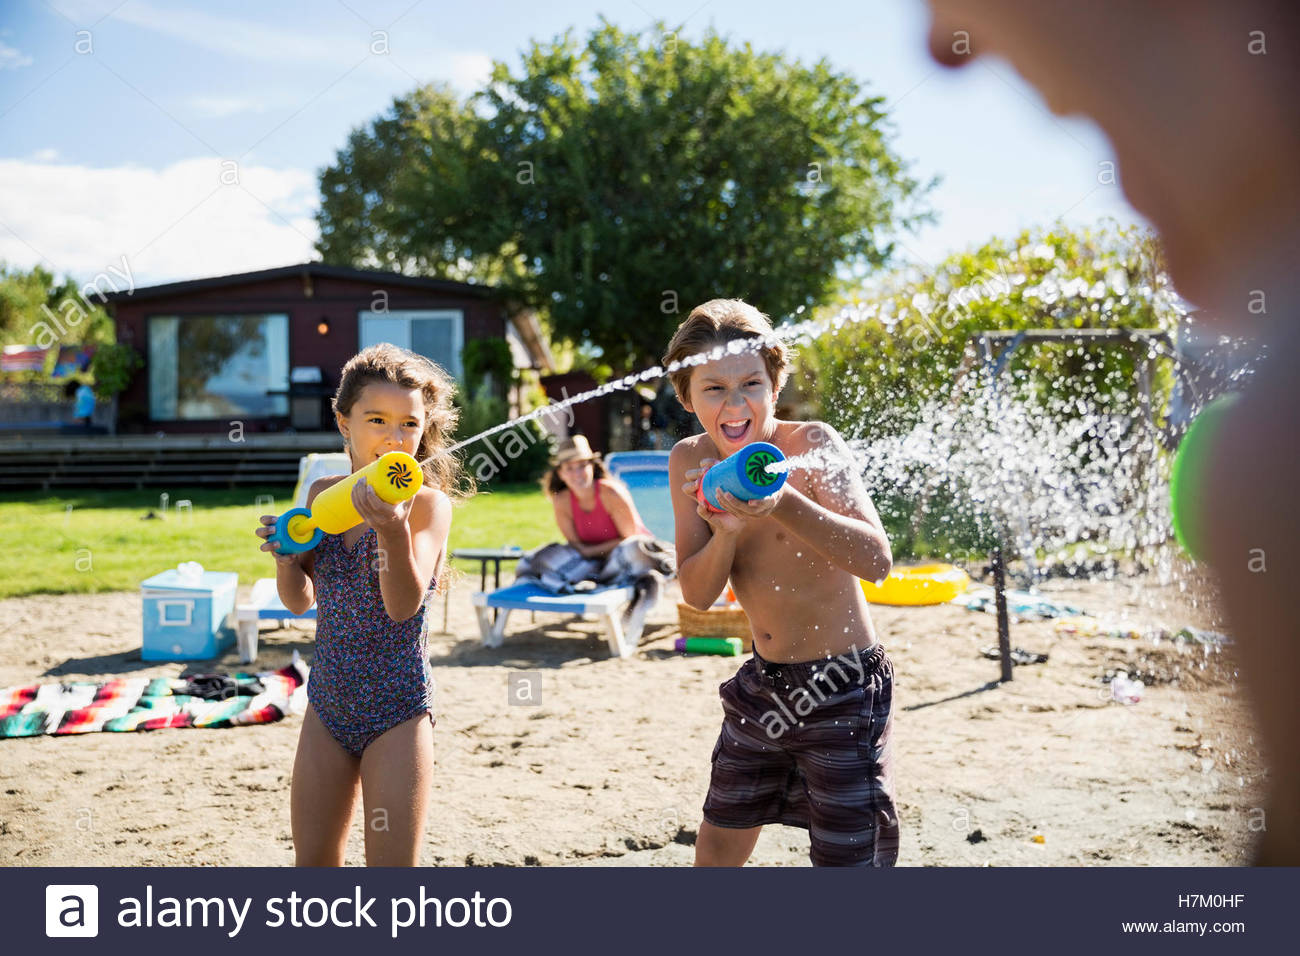 Brother and sister playing with squirt guns at sunny summer beach - Stock Image